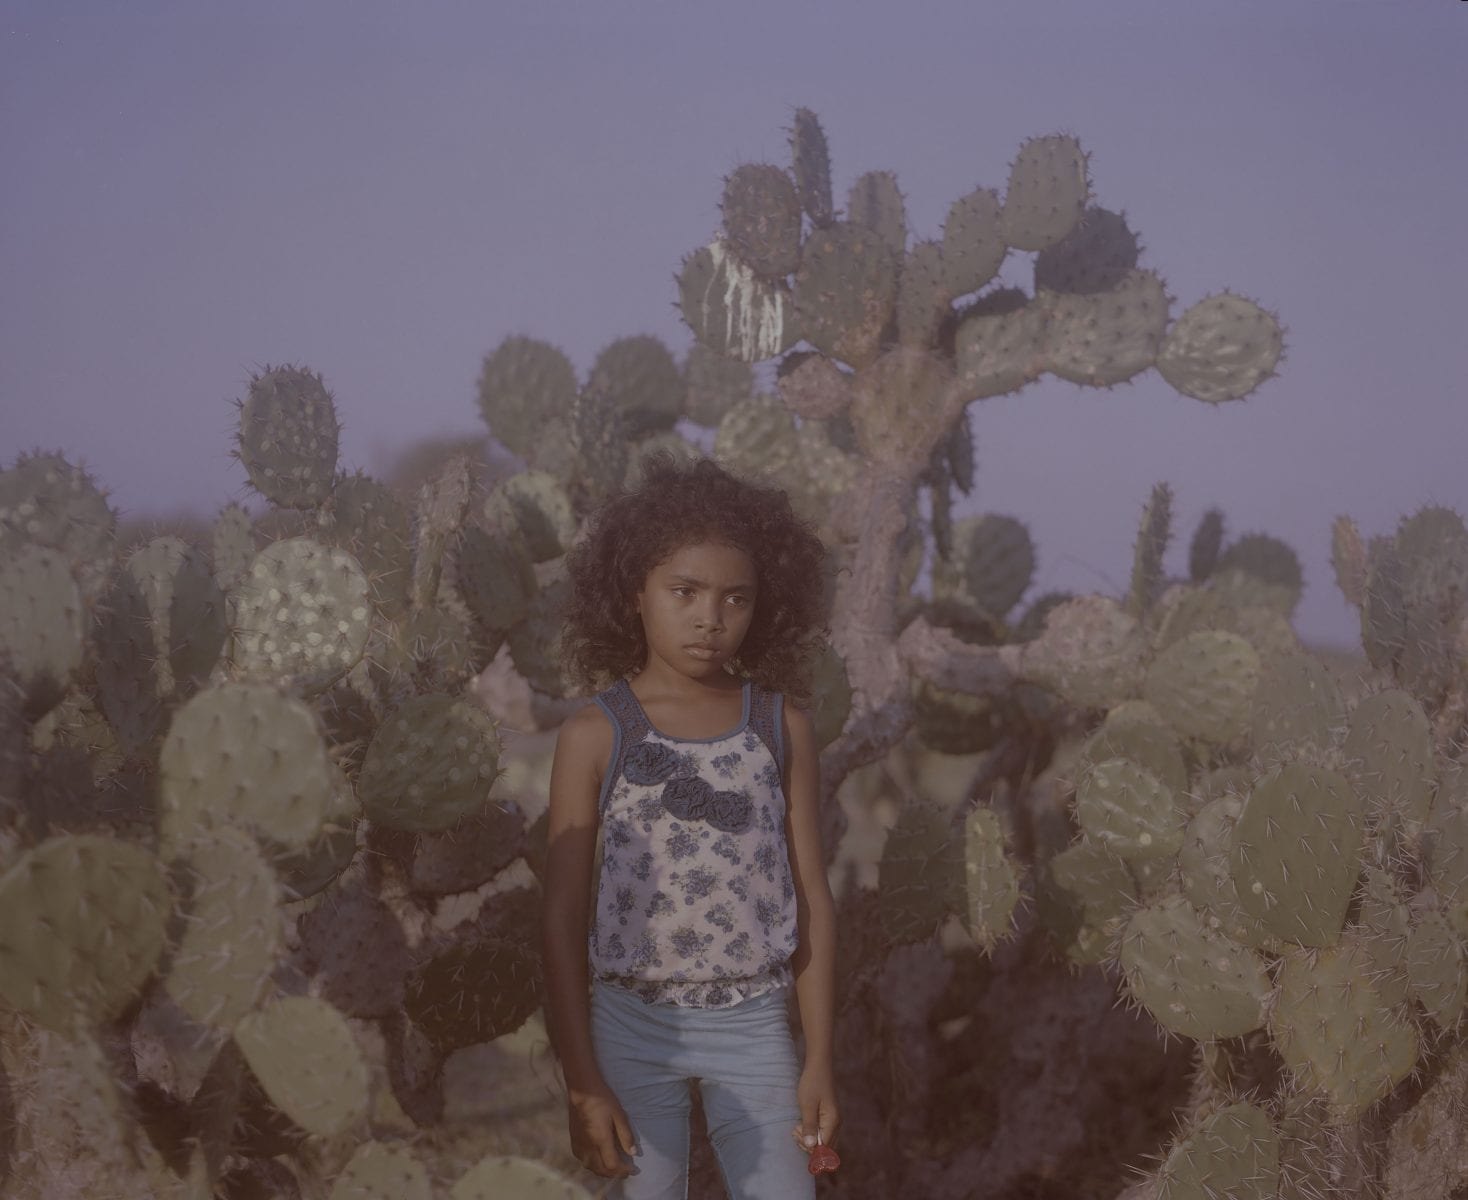 girl and cactus long-term photo project, focusing on the African Identity within Afro-communities in the Americas and Europe, on Costa Chica